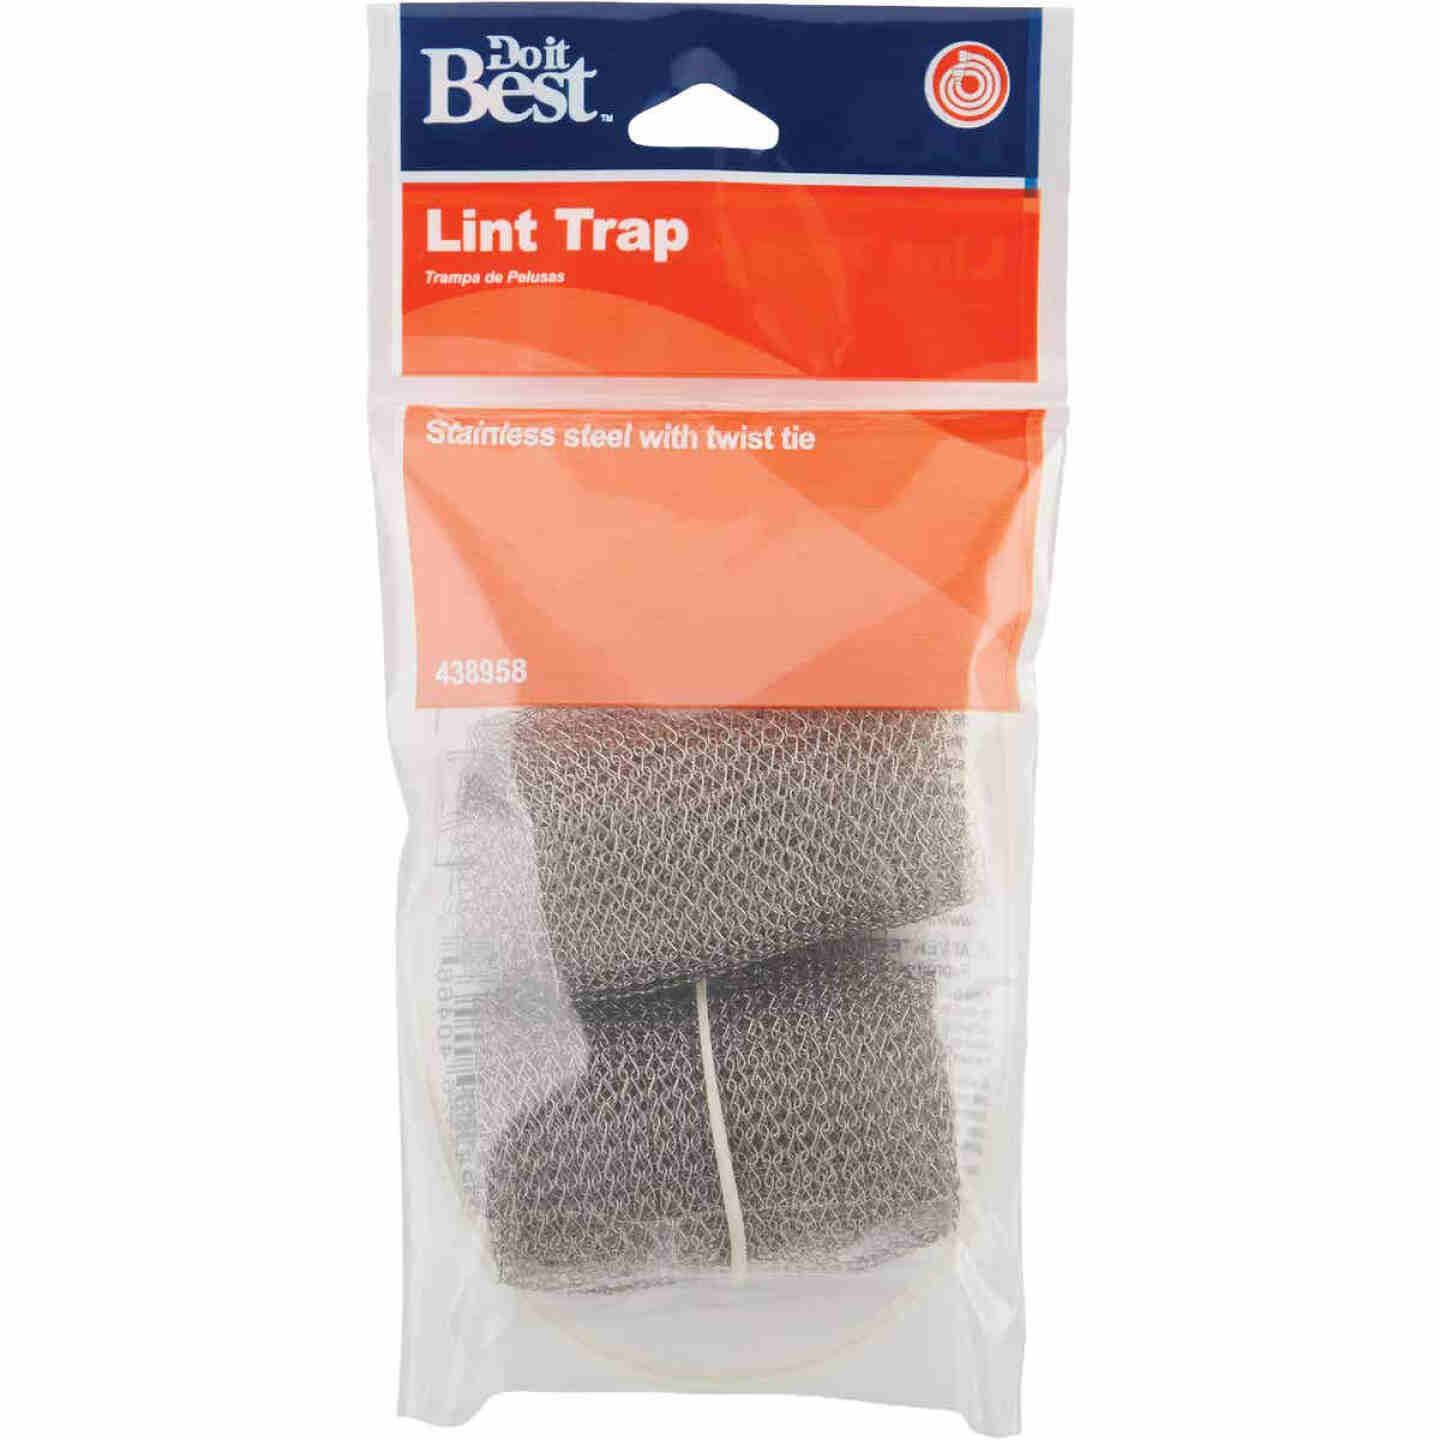 Do it Stainless Steel Lint Trap (2-Pack) Image 2